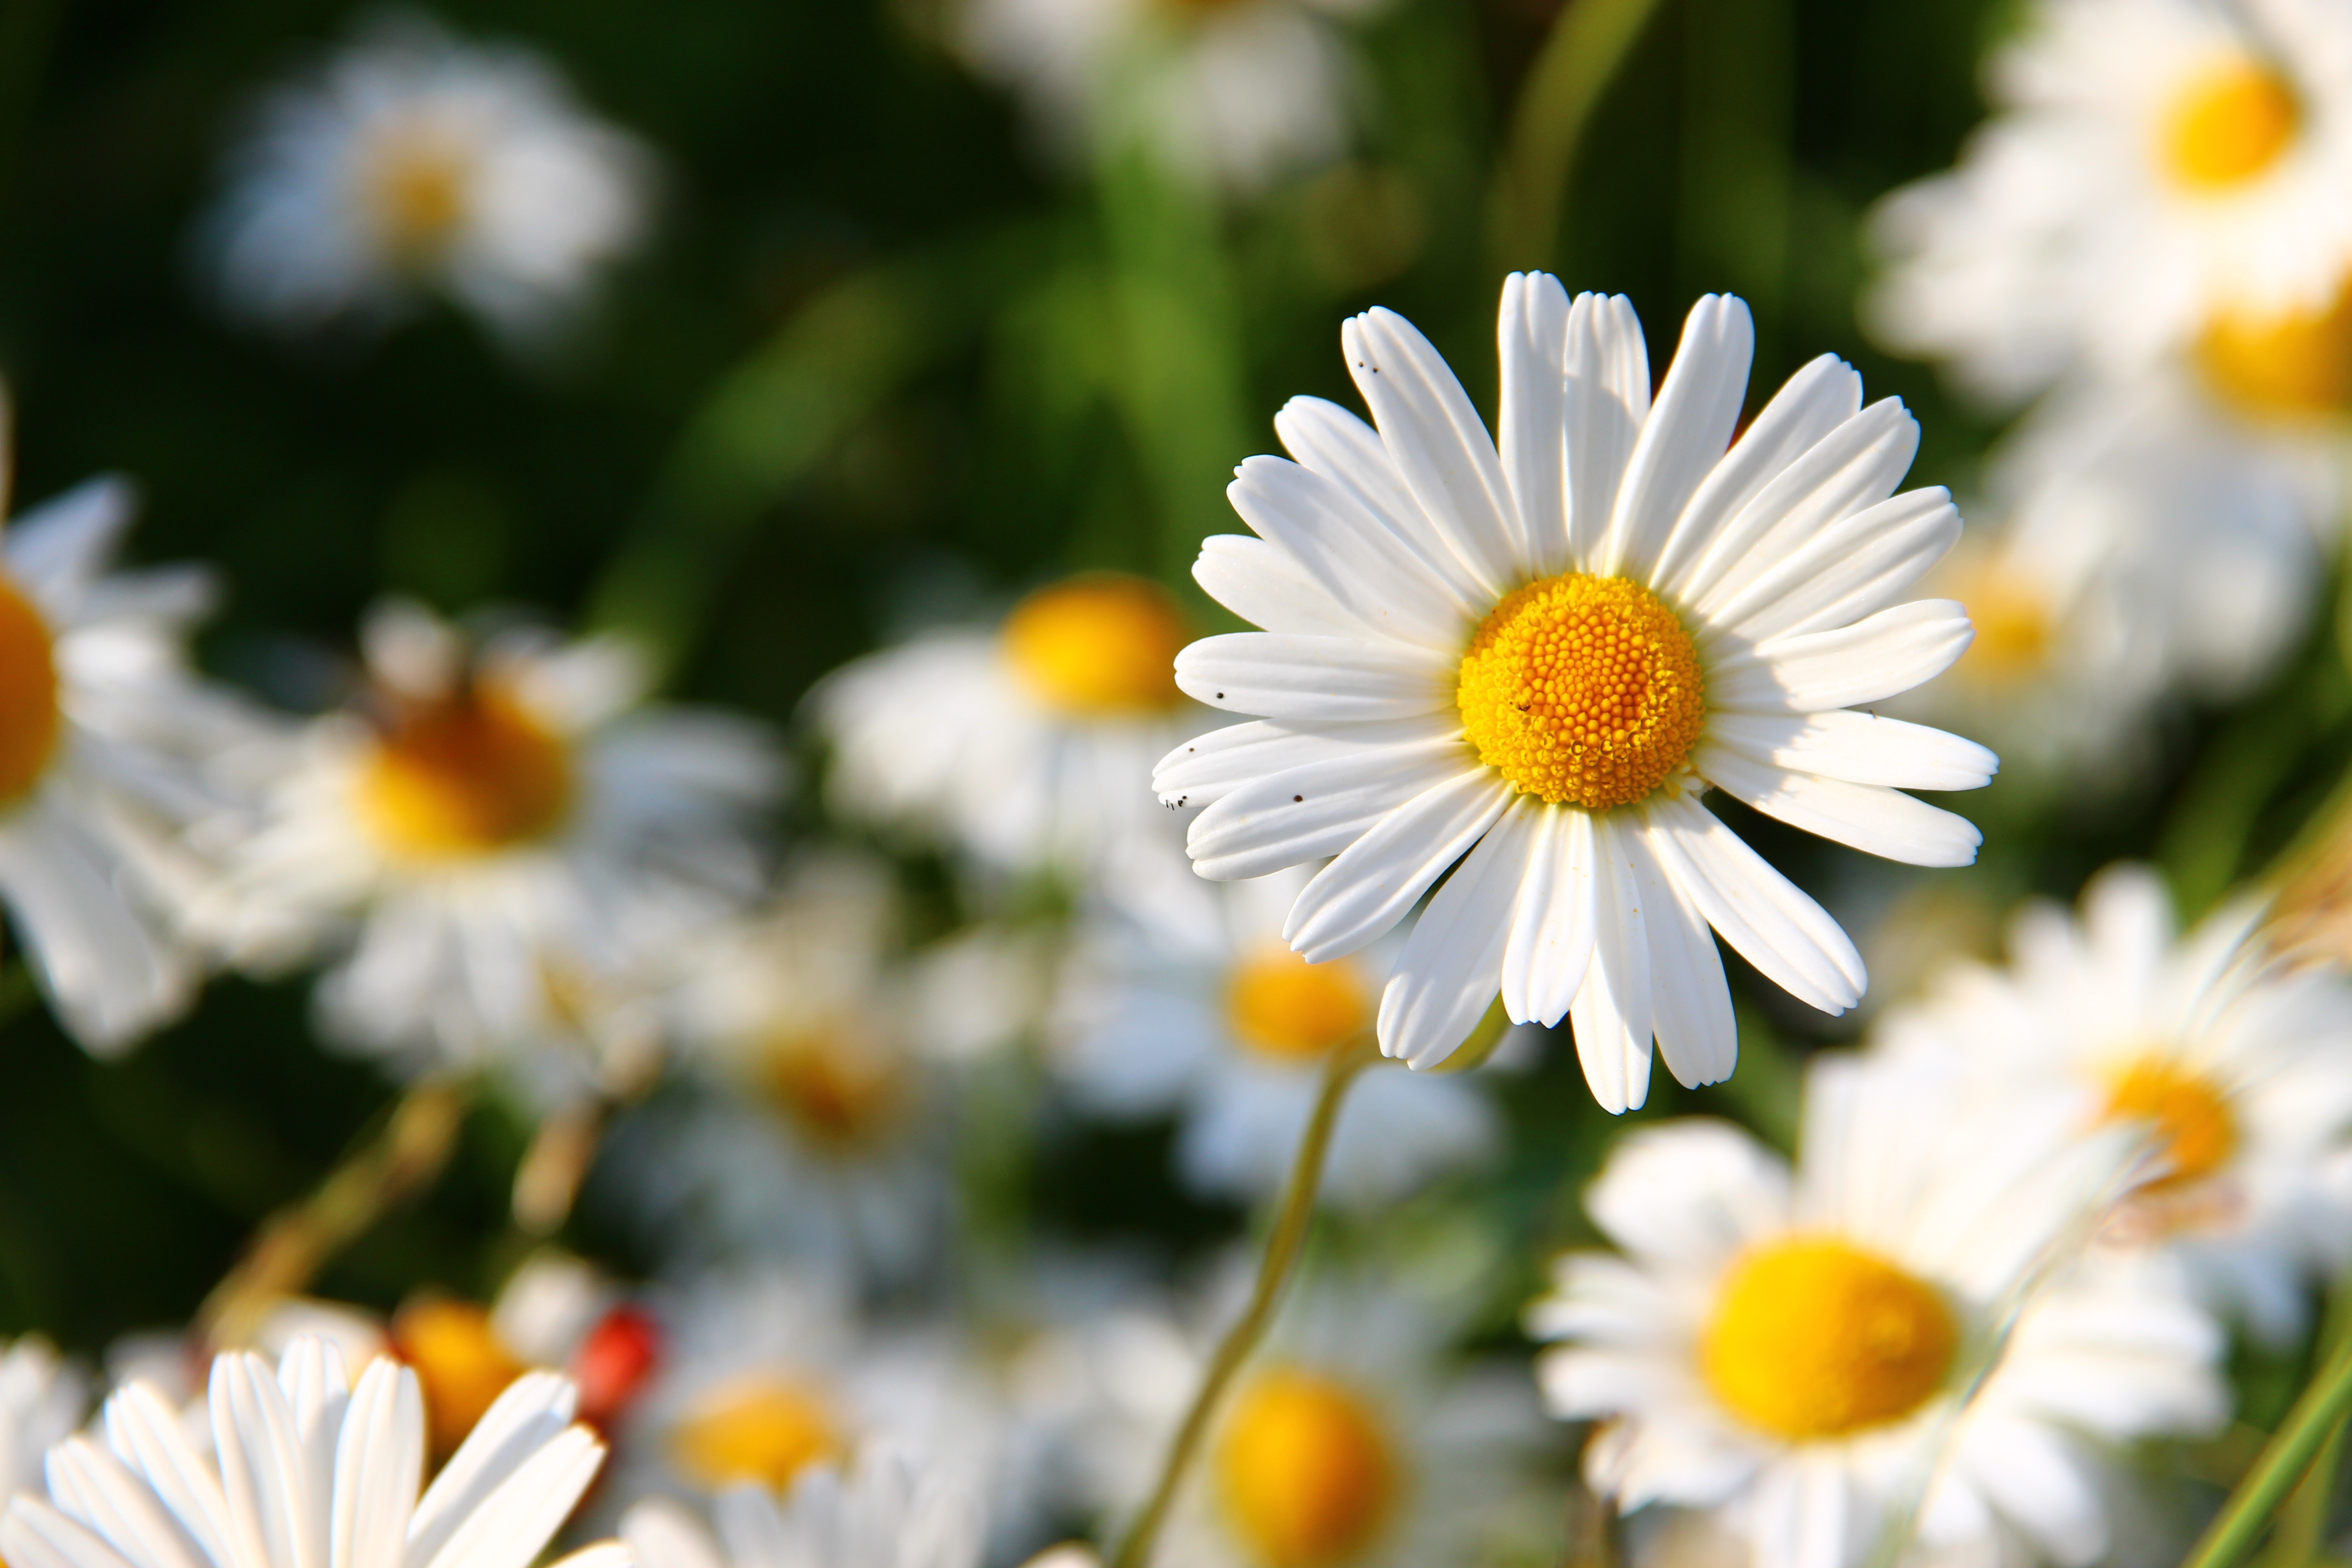 White And Yellow Flower View During Daytime Free Stock Photo